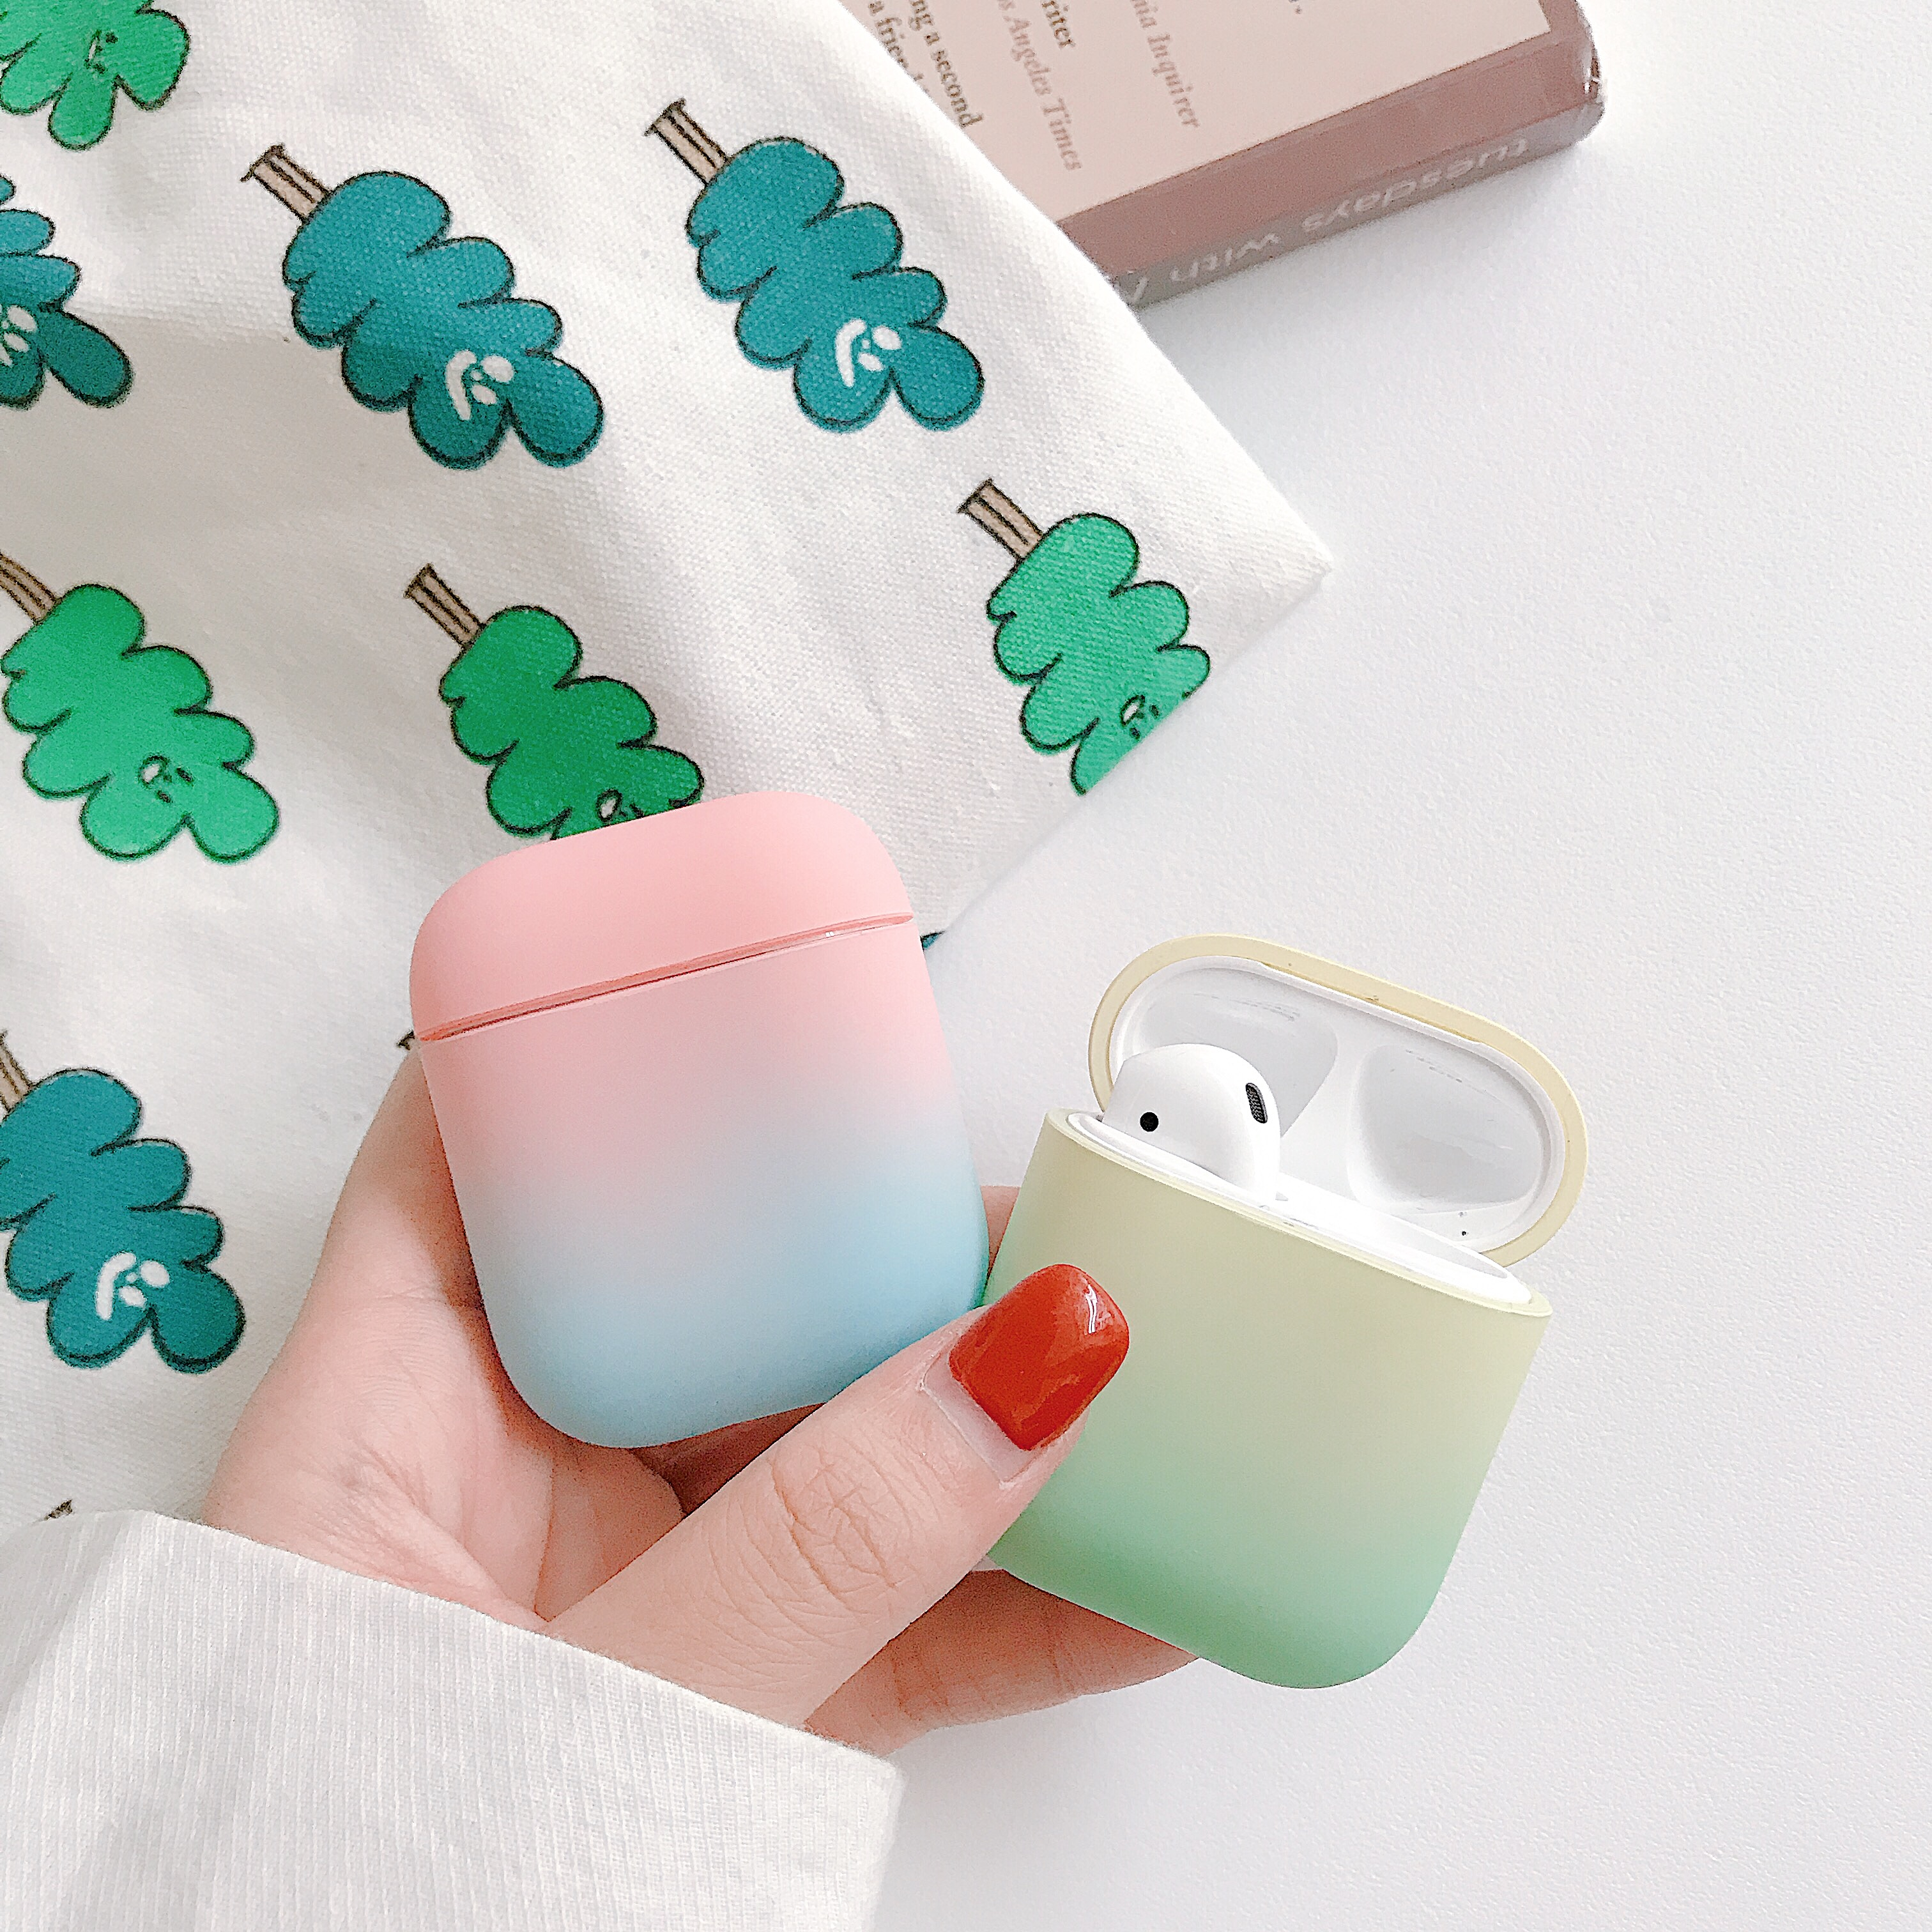 For AirPods Case Gradient Rainbow Color Hard Protective Cover Bluetooth Wireless Earphone Case For Air pods shell in Earphone Accessories from Consumer Electronics